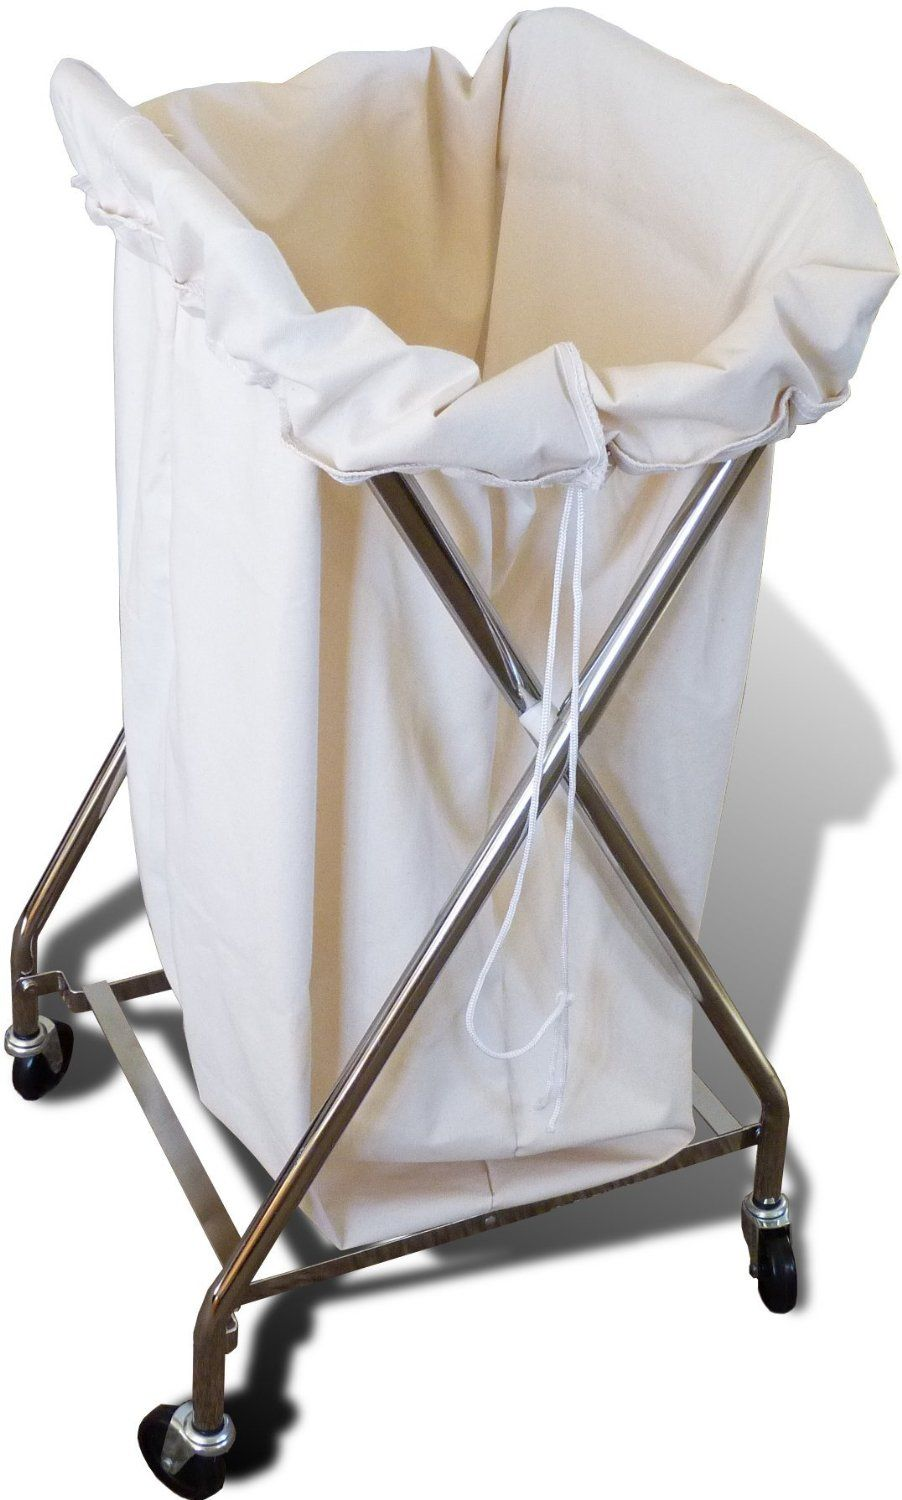 Amazon.com - Lumex GF8132 Adjustable Folding Hamper with Natural Canvas Bag; Rolling Chrome-plated Laundry Cart and Liner - Rolling Hampers For Laundry